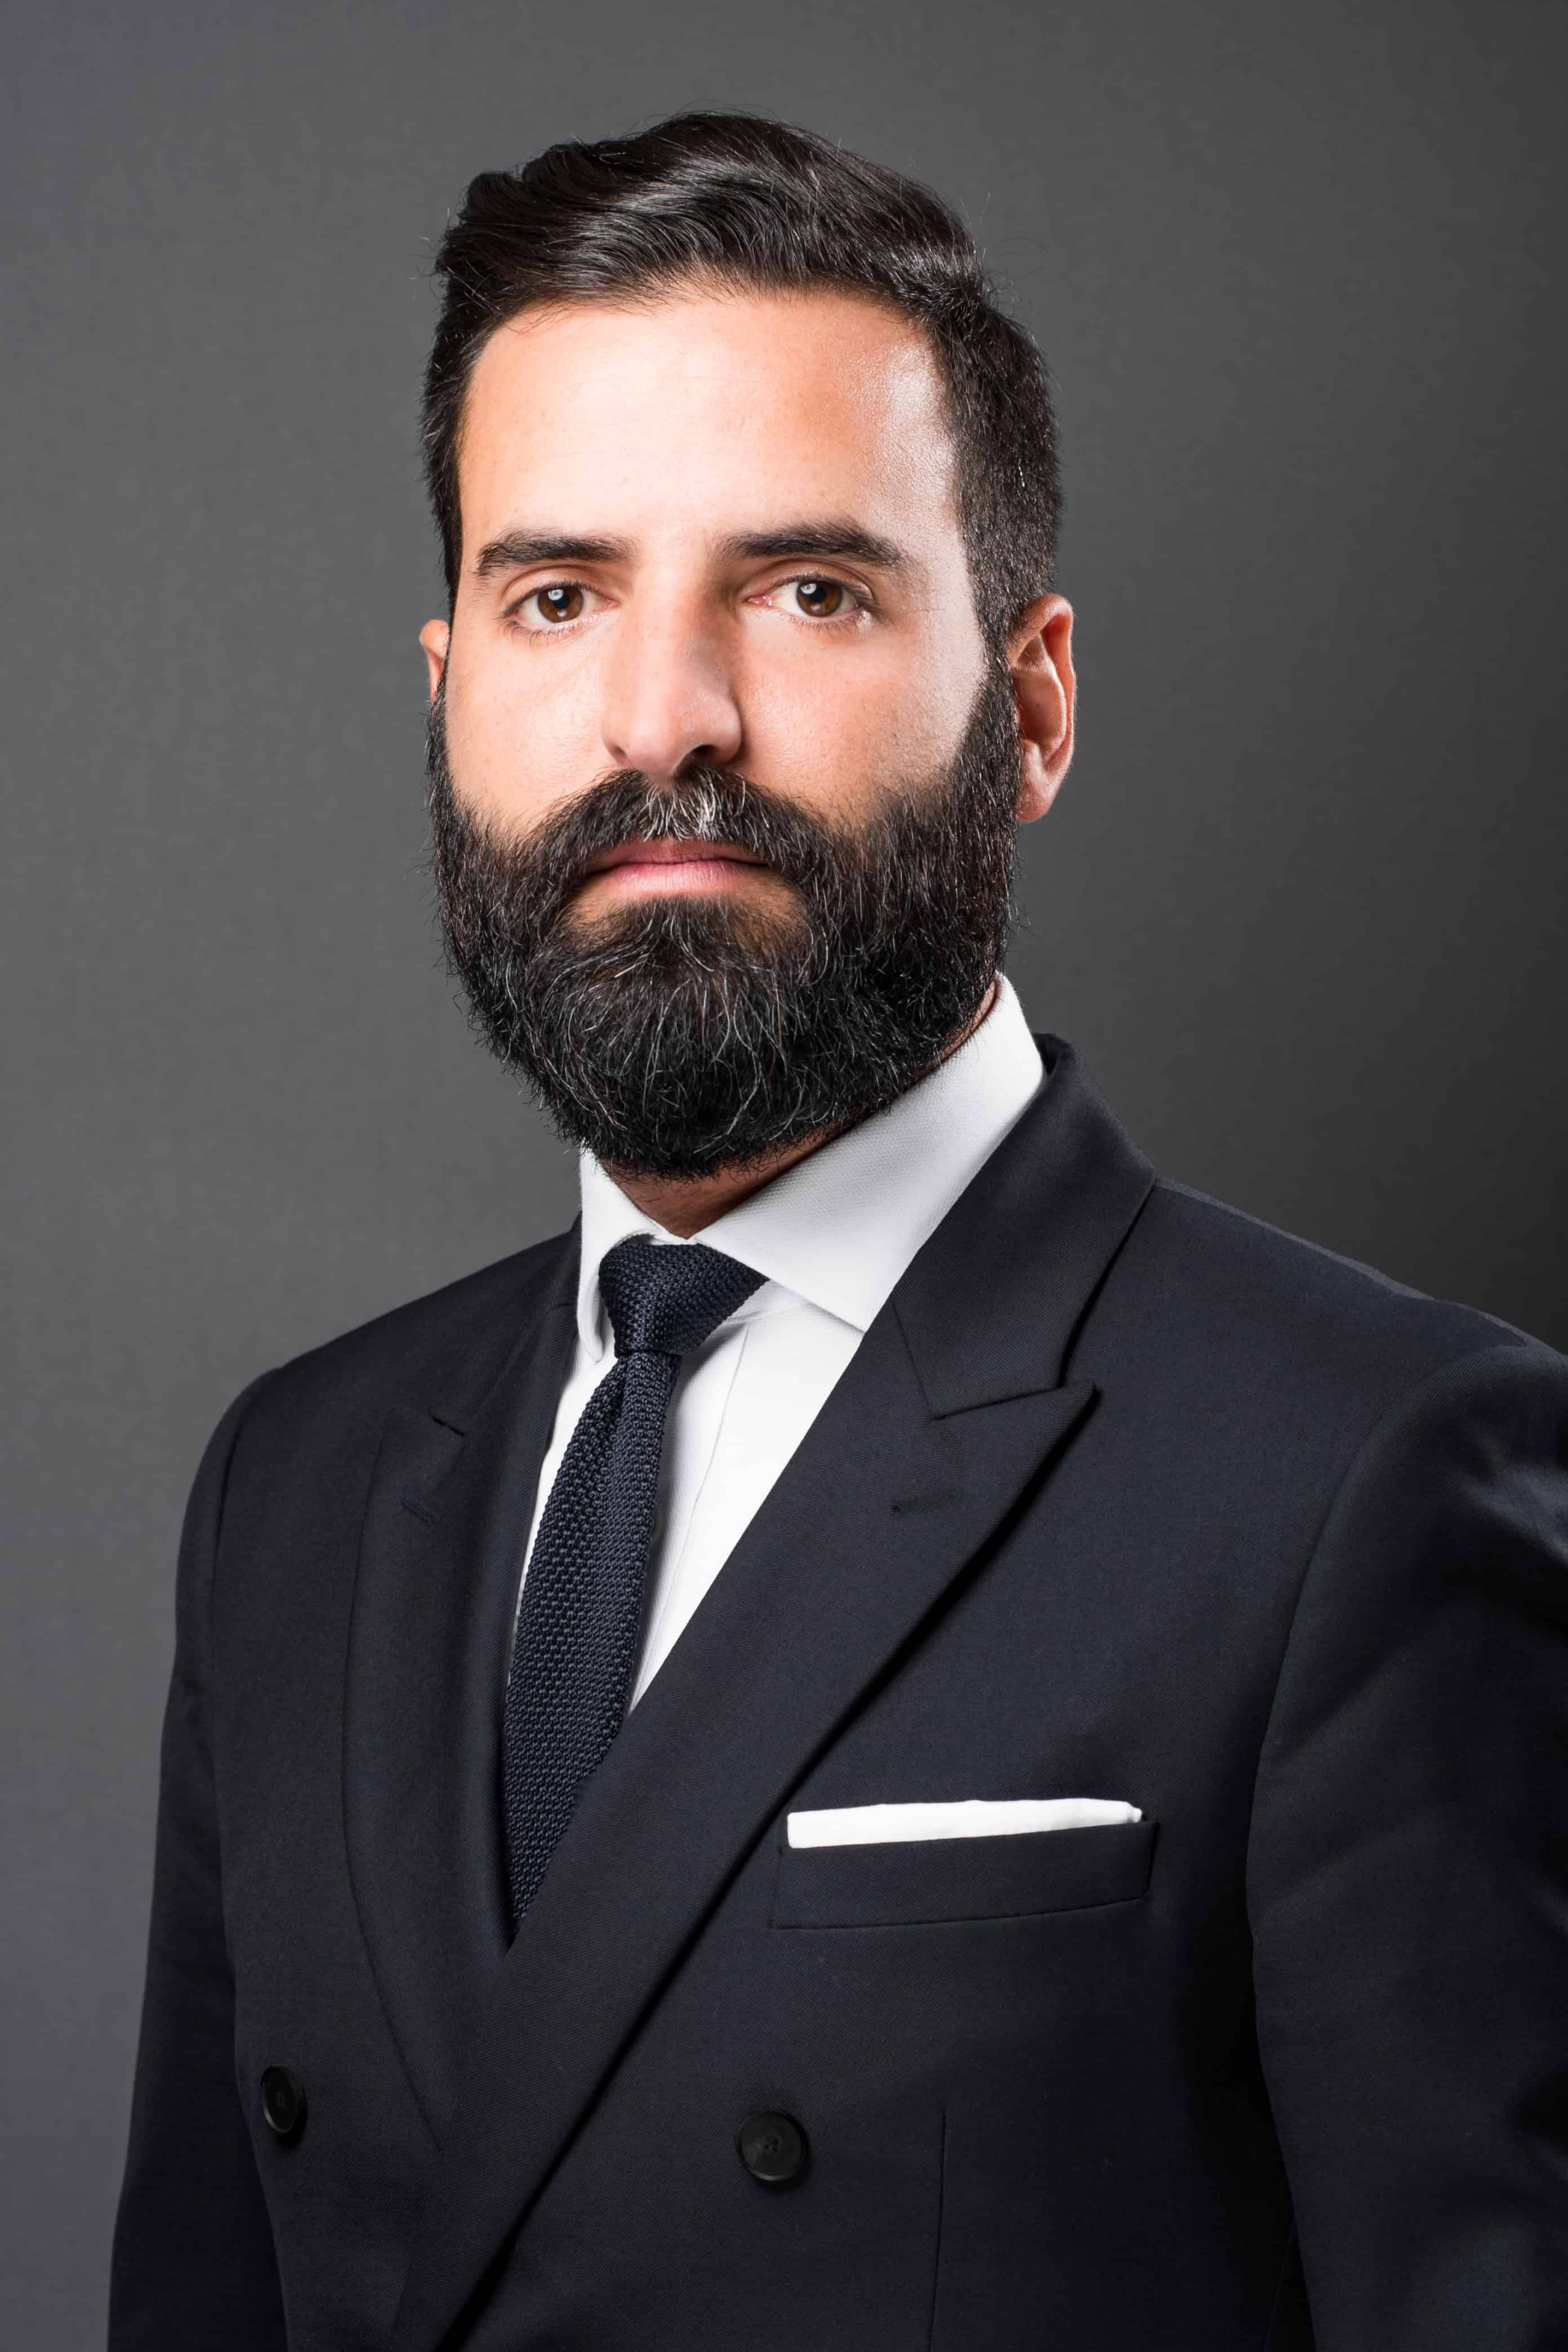 Corporate headshot of businessman with formal dress.